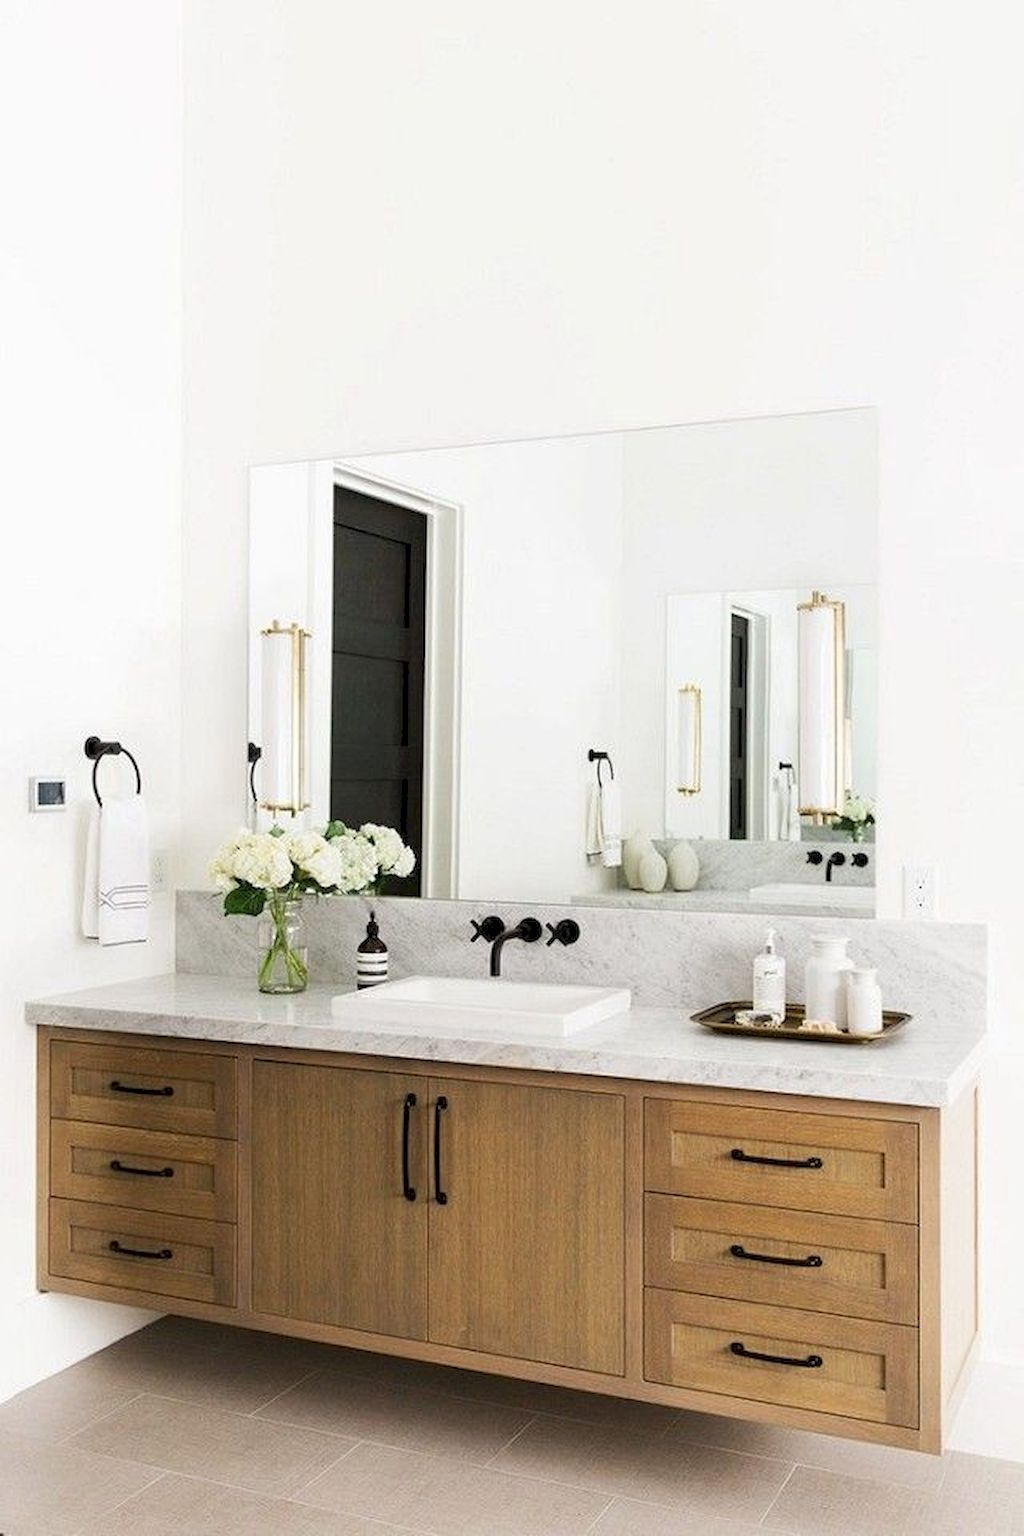 Modern Bathroom Designs With Floating Wood Vanity And Wallmounted Bathroom  Cabinets Part 2